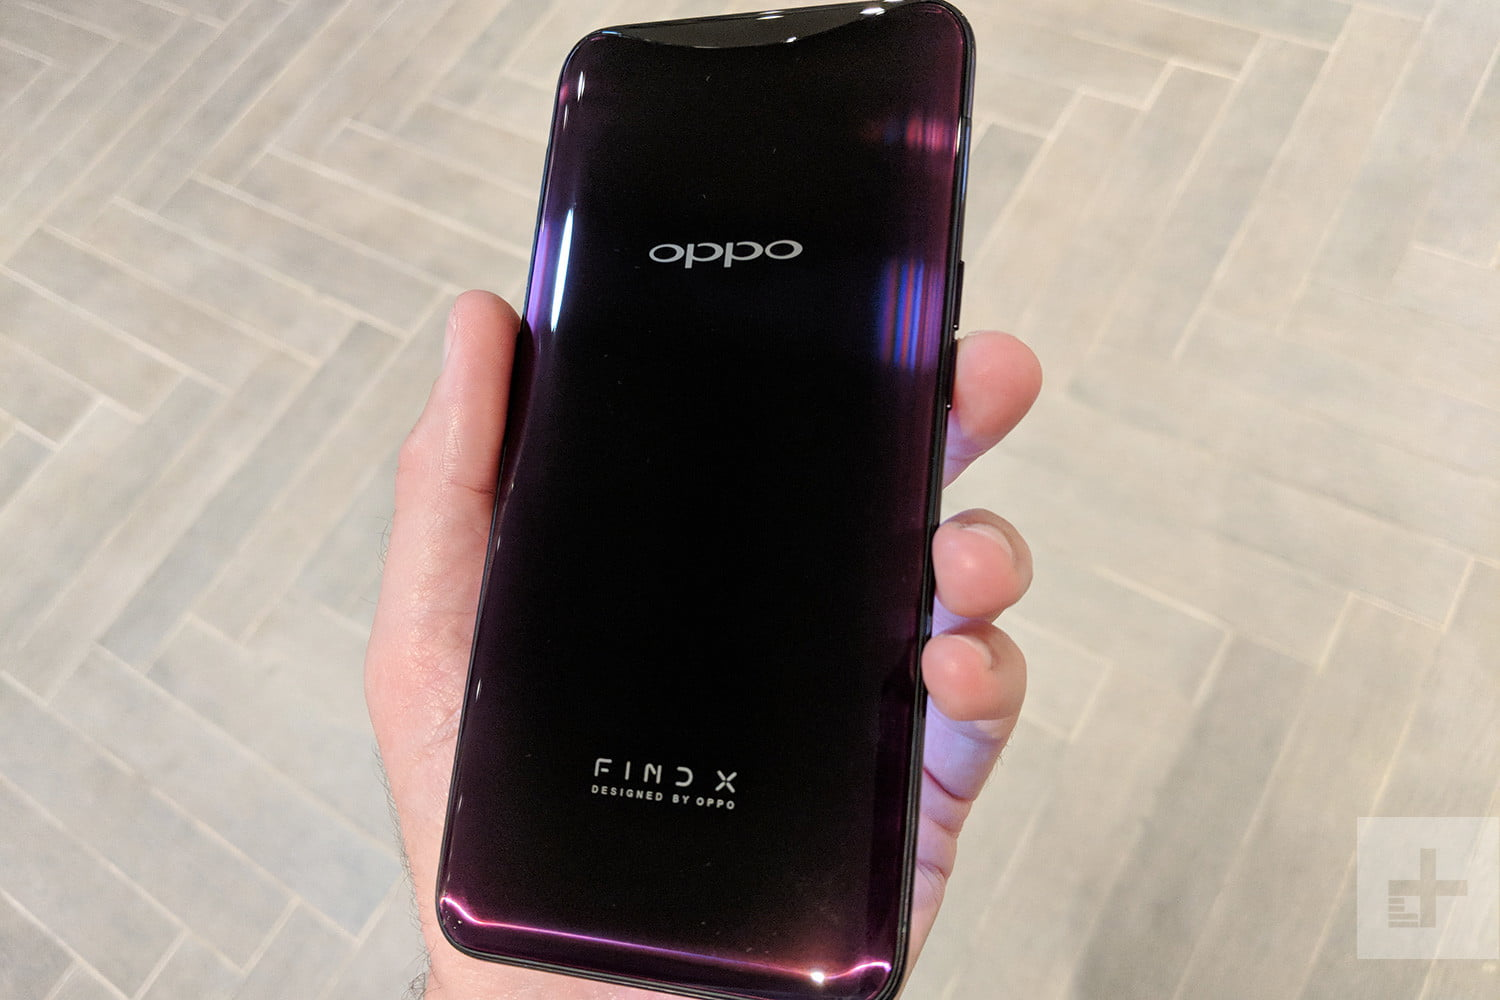 Oppo Find X: Flagship Specs, No Notch, and an Amazing Secret